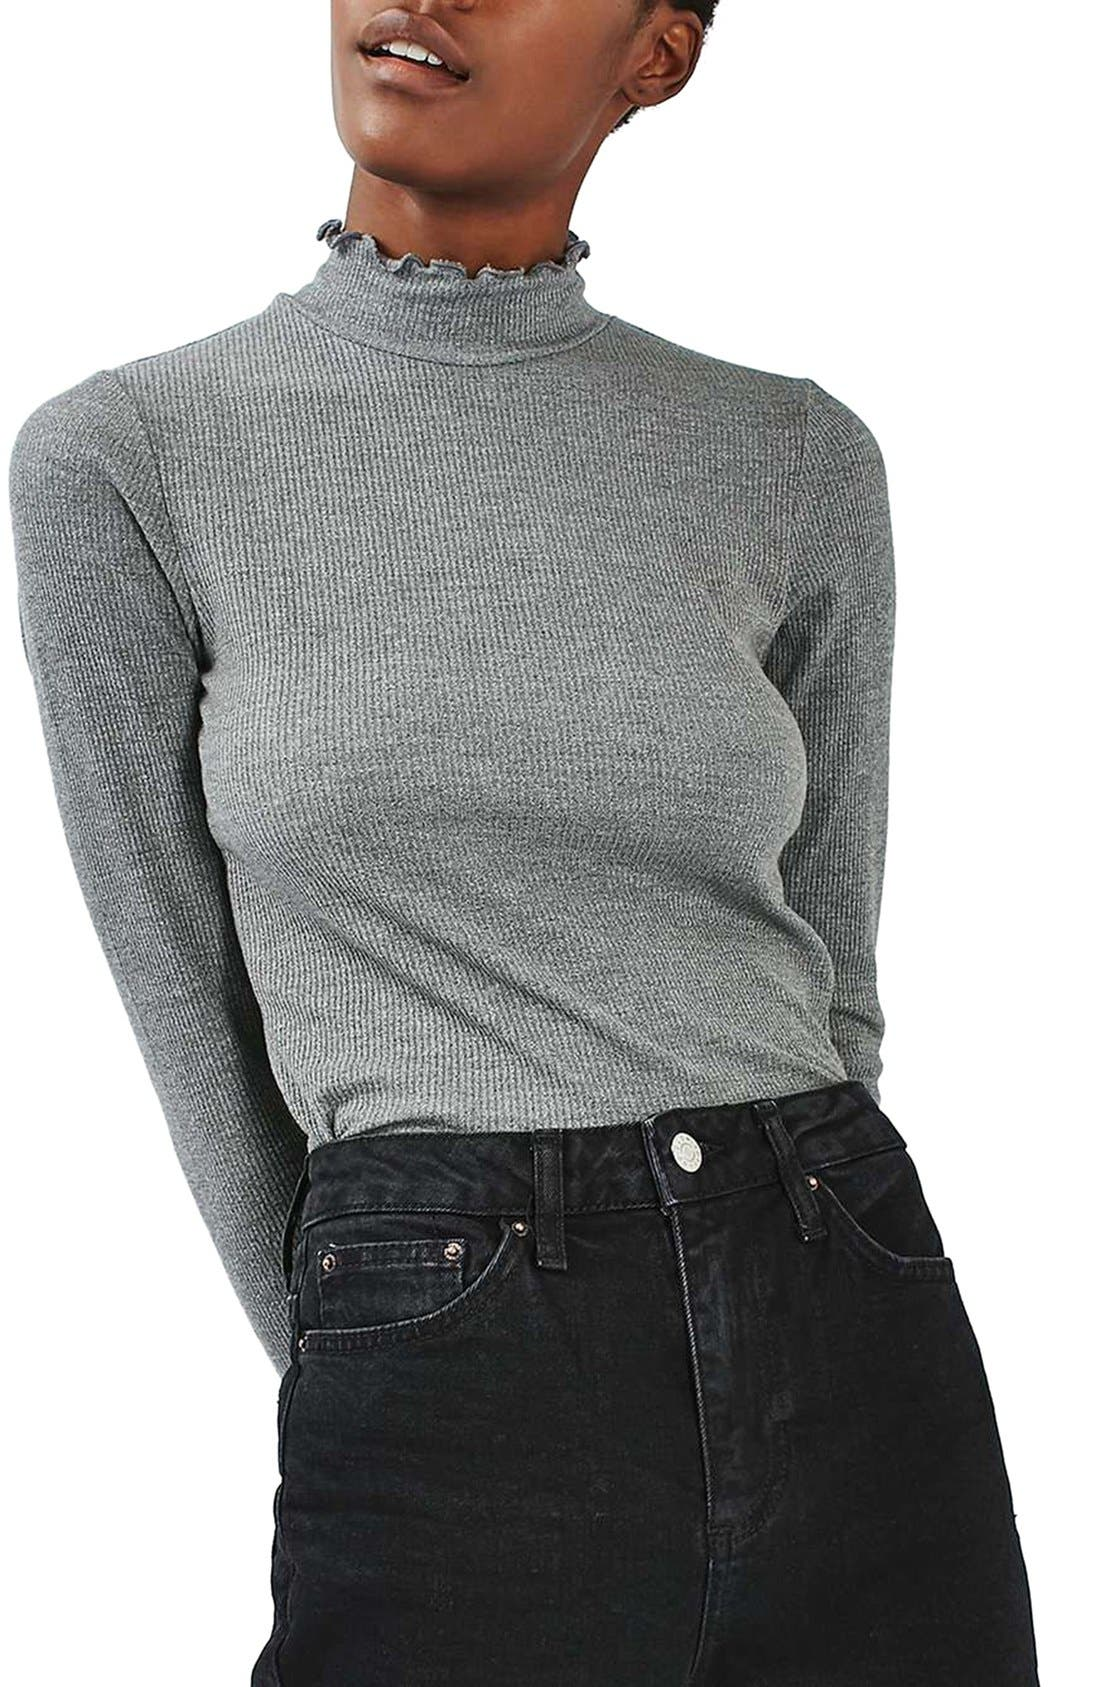 Alternate Image 1 Selected - Topshop Lettuce Edge Turtleneck